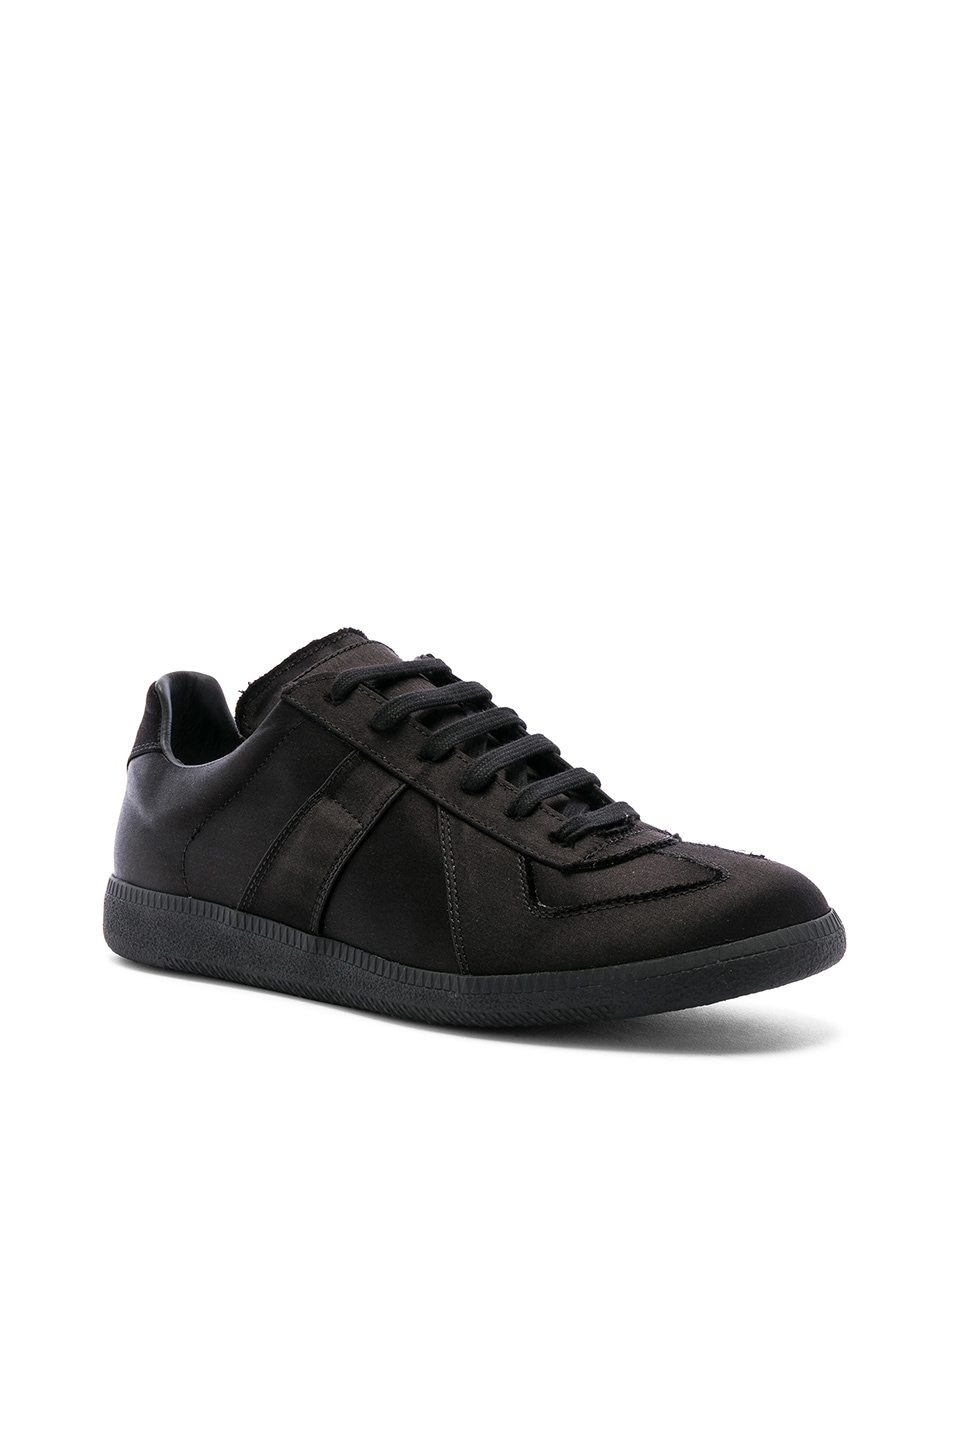 Image 1 of Maison Margiela Replica Low Top Sneakers in Black